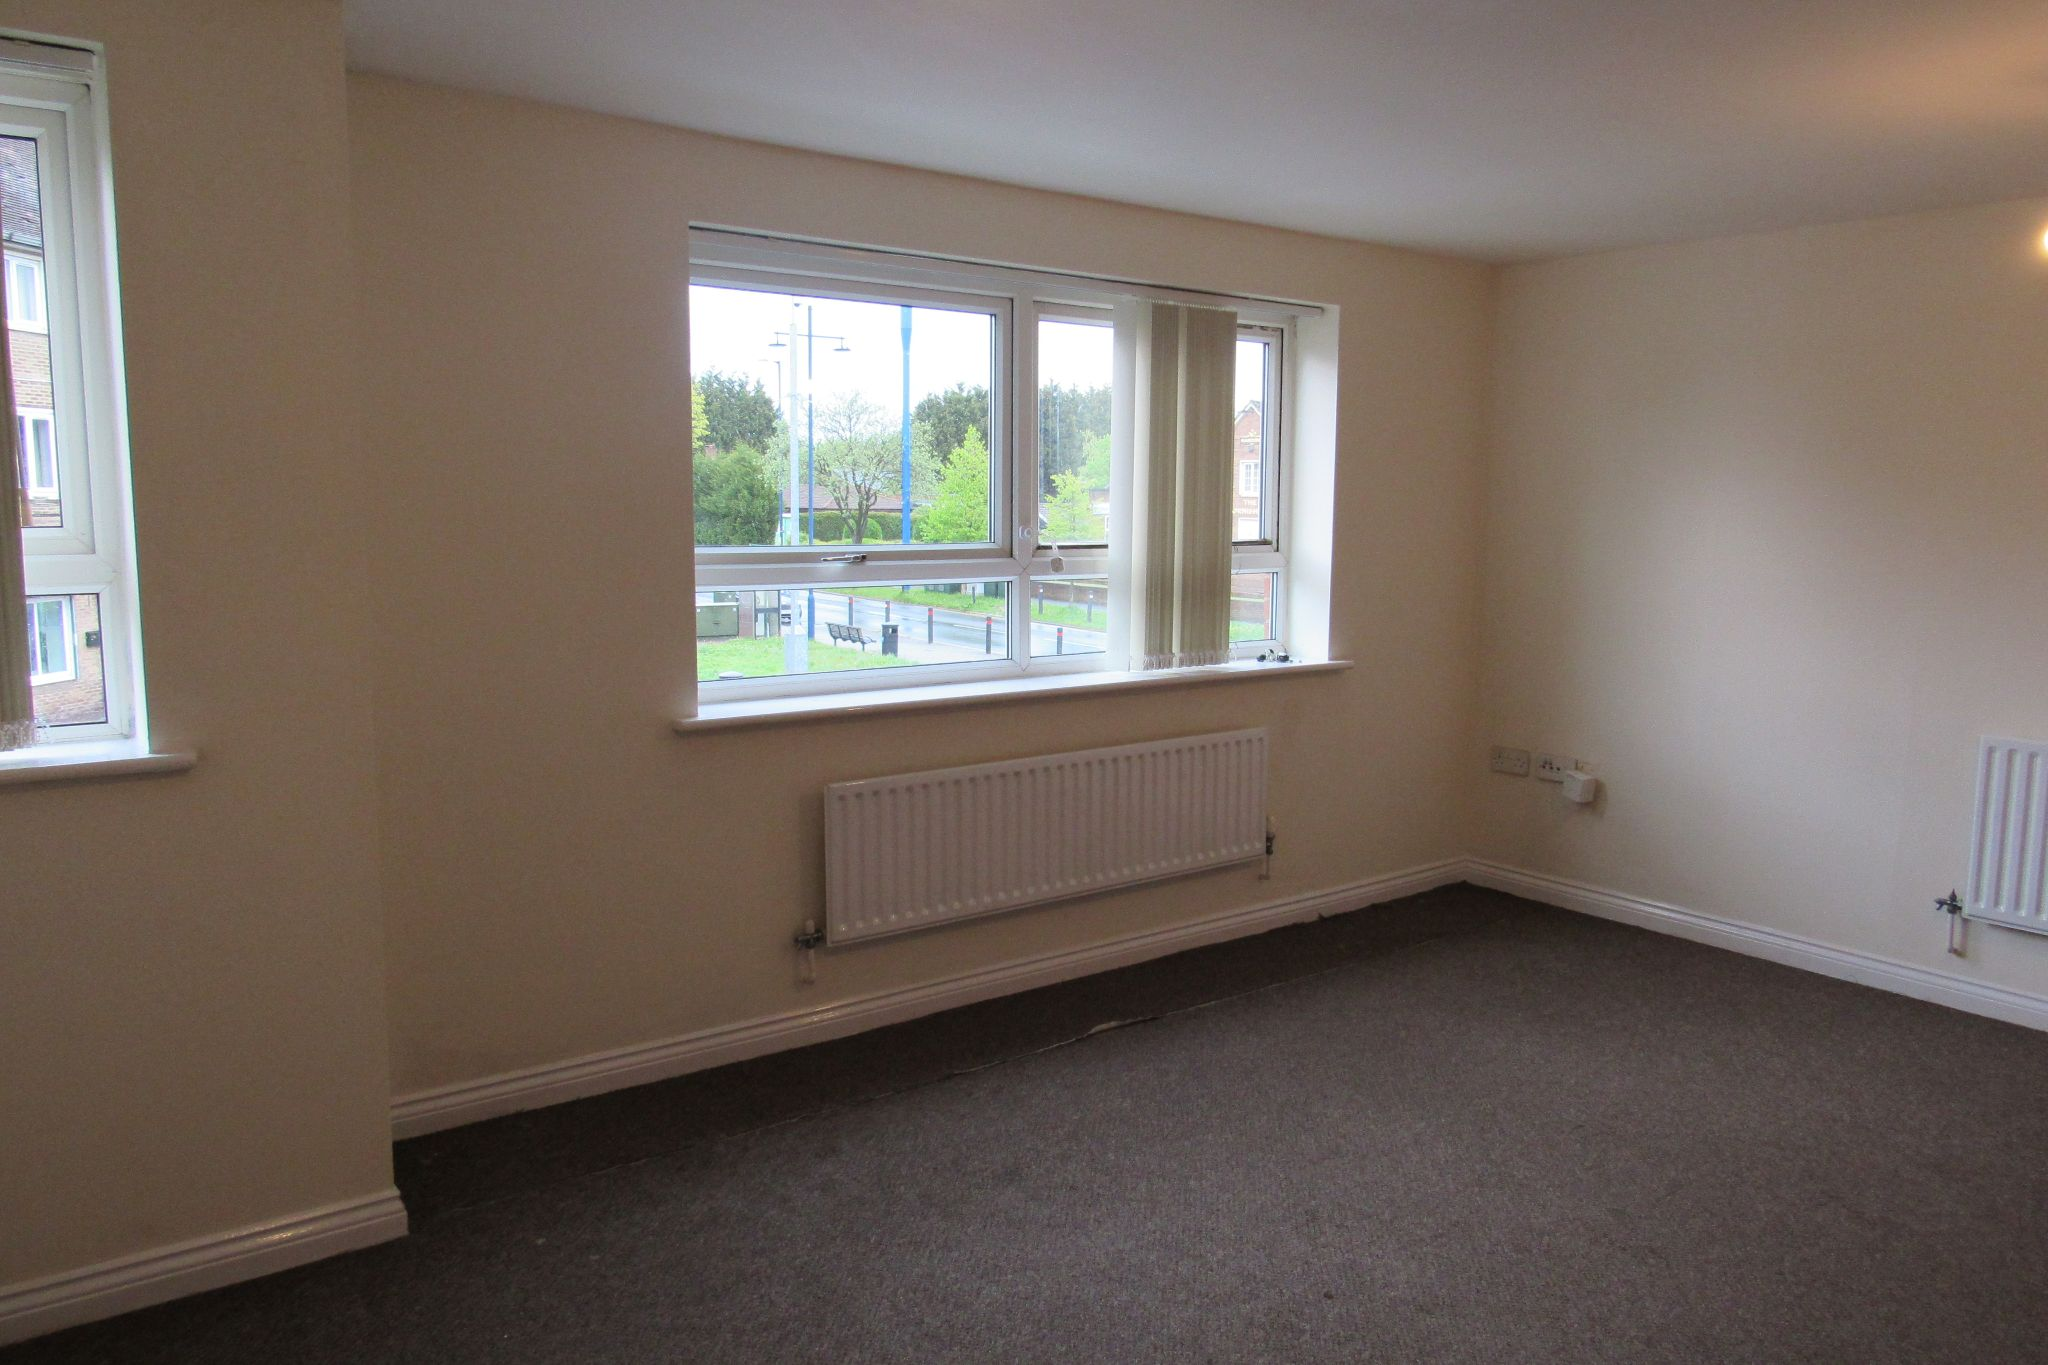 2 bedroom apartment flat/apartment SSTC in Manchester - Photograph 4.